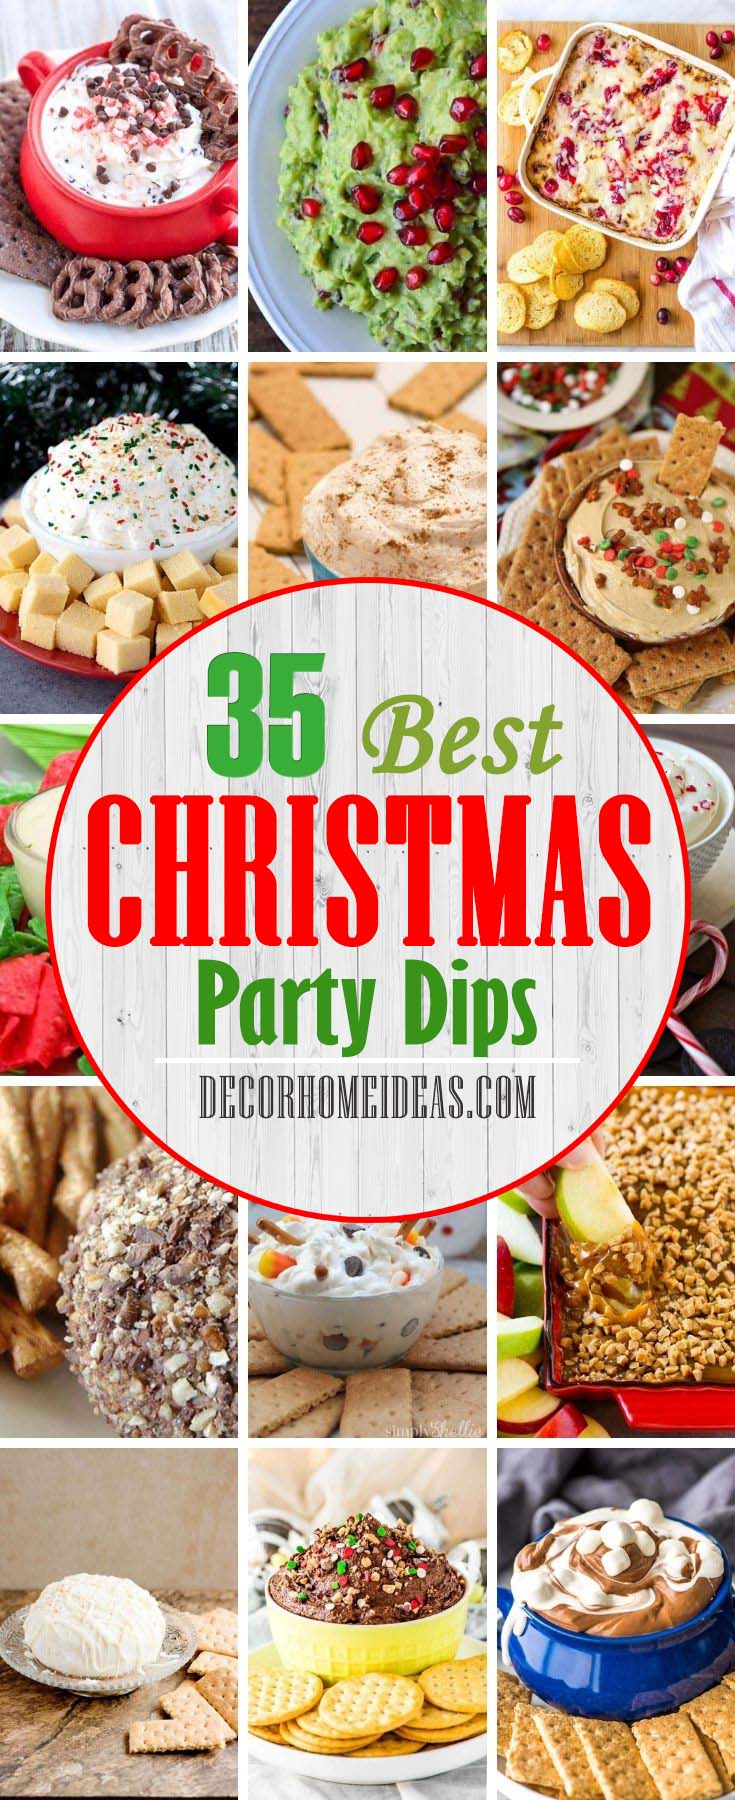 Best Christmas Party Dips. Don't forget to make dips for your Christmas party guests. From Peppermint fluff dip to Cinnamon Roll Cheesecake, here are the best dips to make this holiday season. #decorhomeideas